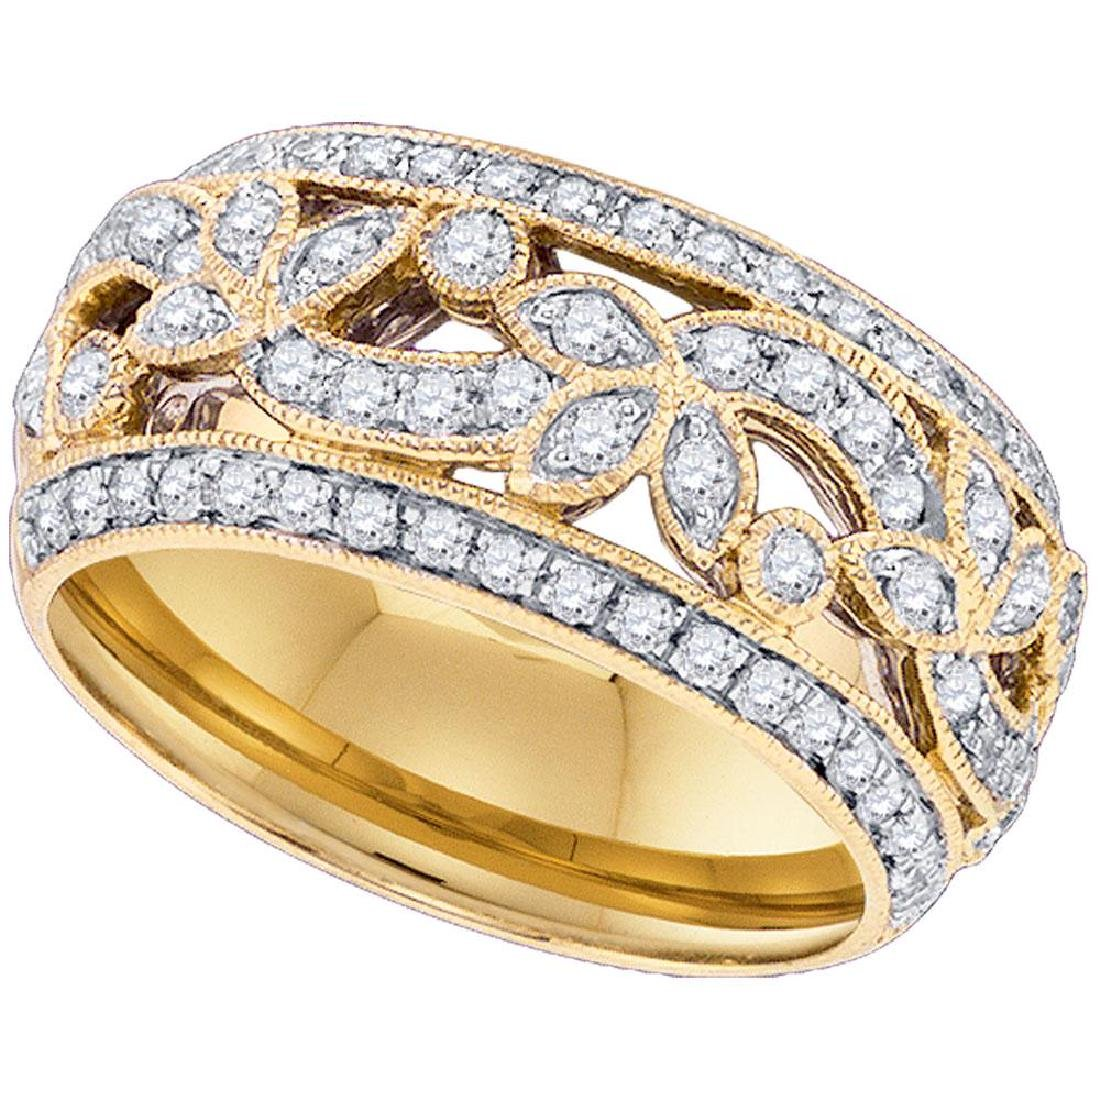 0.75 CTW Diamond Floral Ring 14KT Yellow Gold -